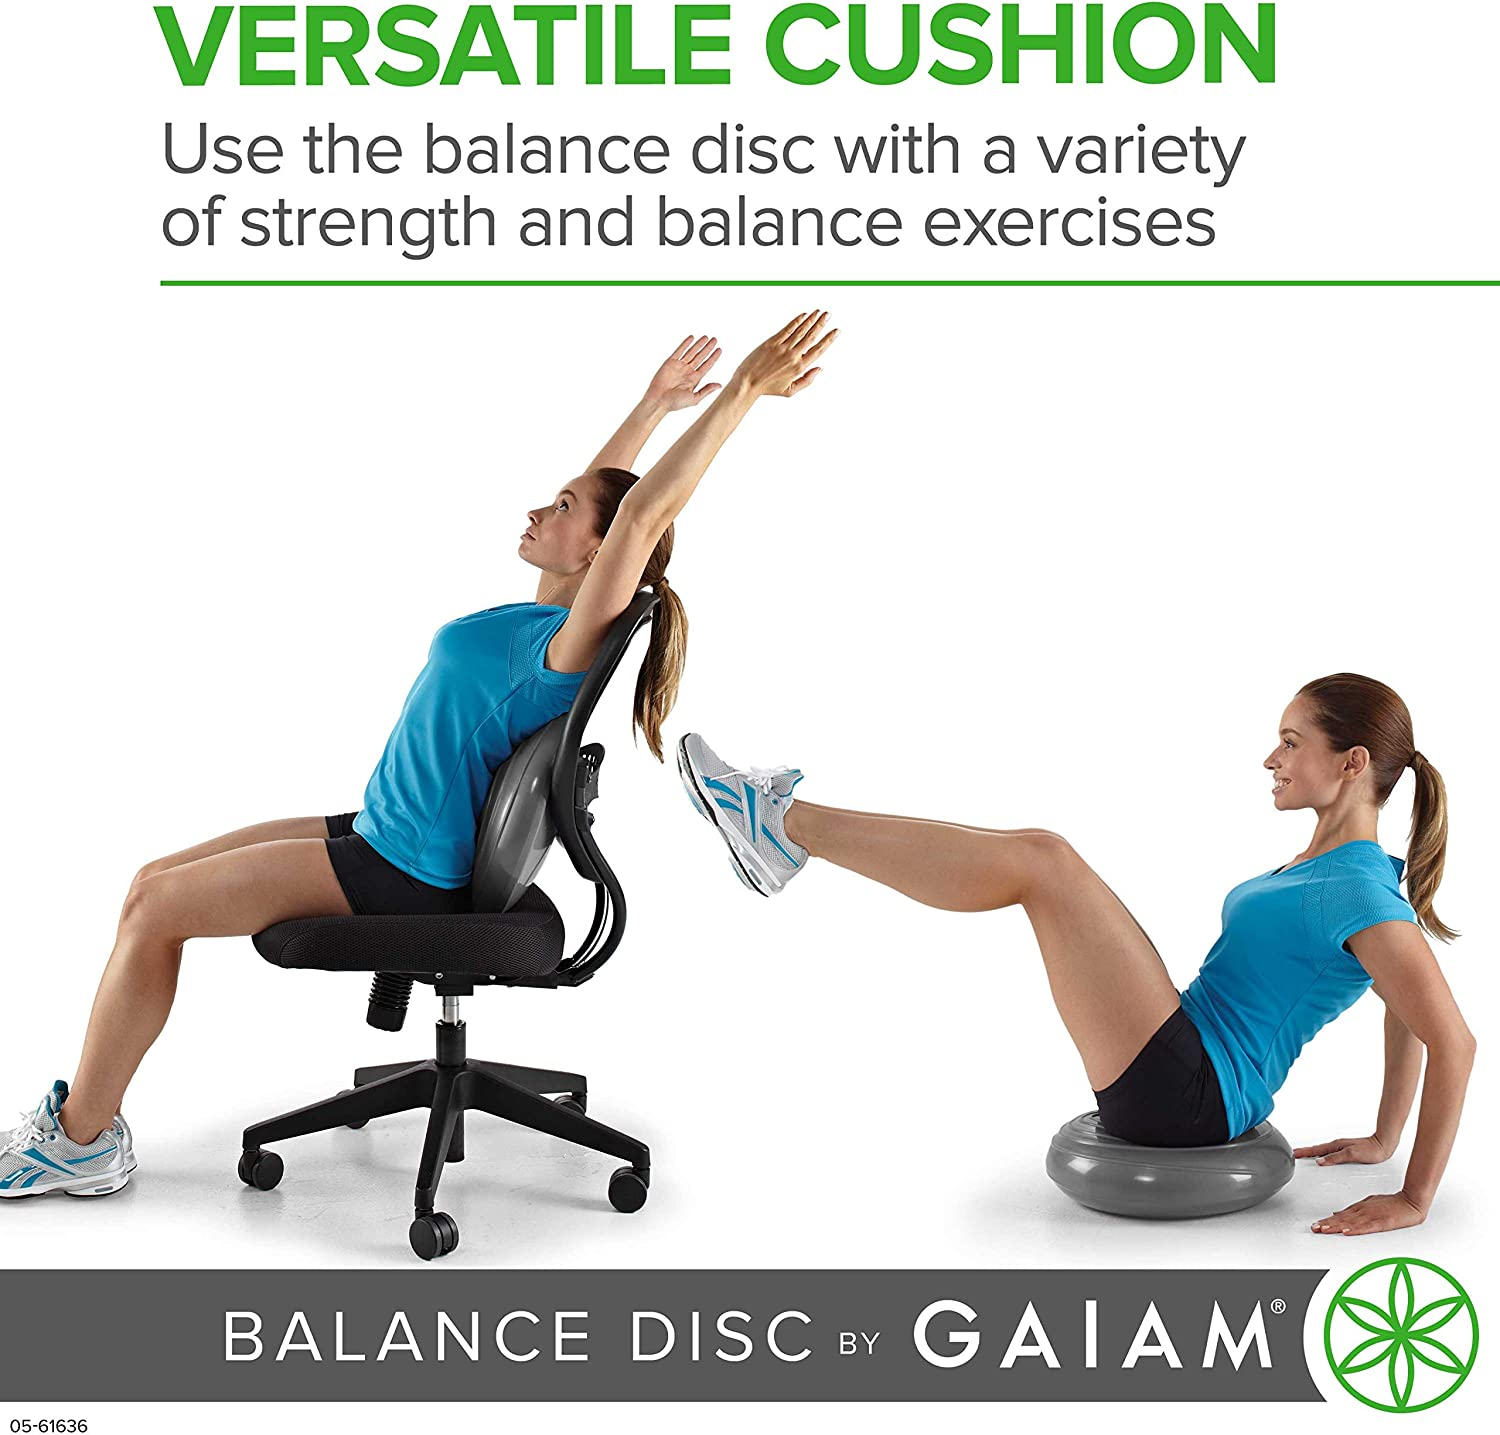 JUST4U Balance Cushion to Improve Sitting Posture,Core Strength,Enhance Coordination and Stability for Kids/&Adults